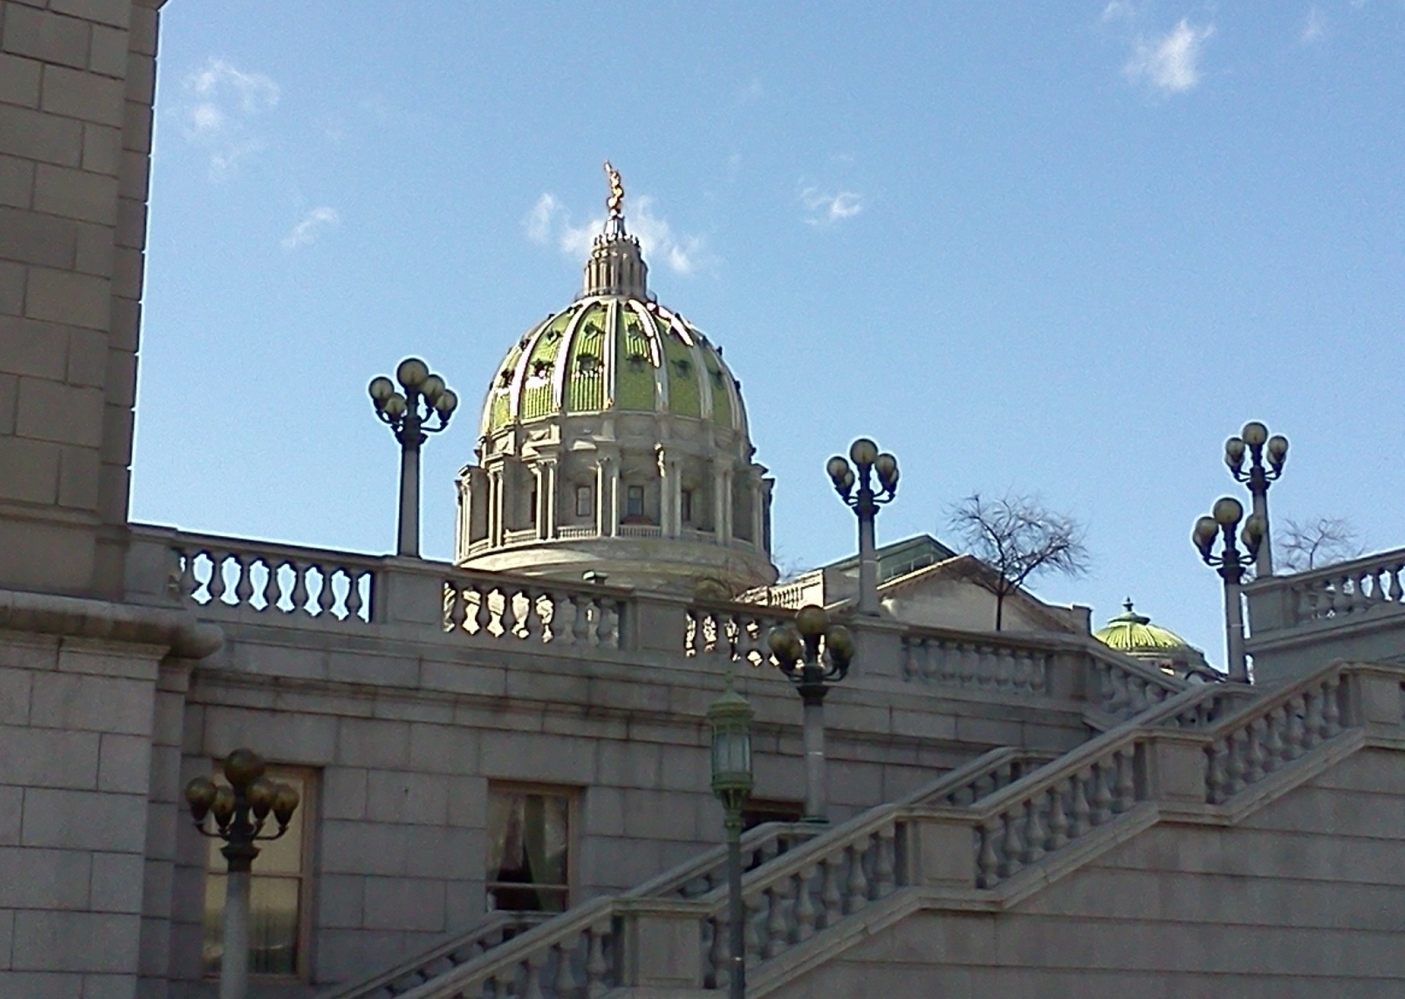 Capitol, State Capitol, Dome